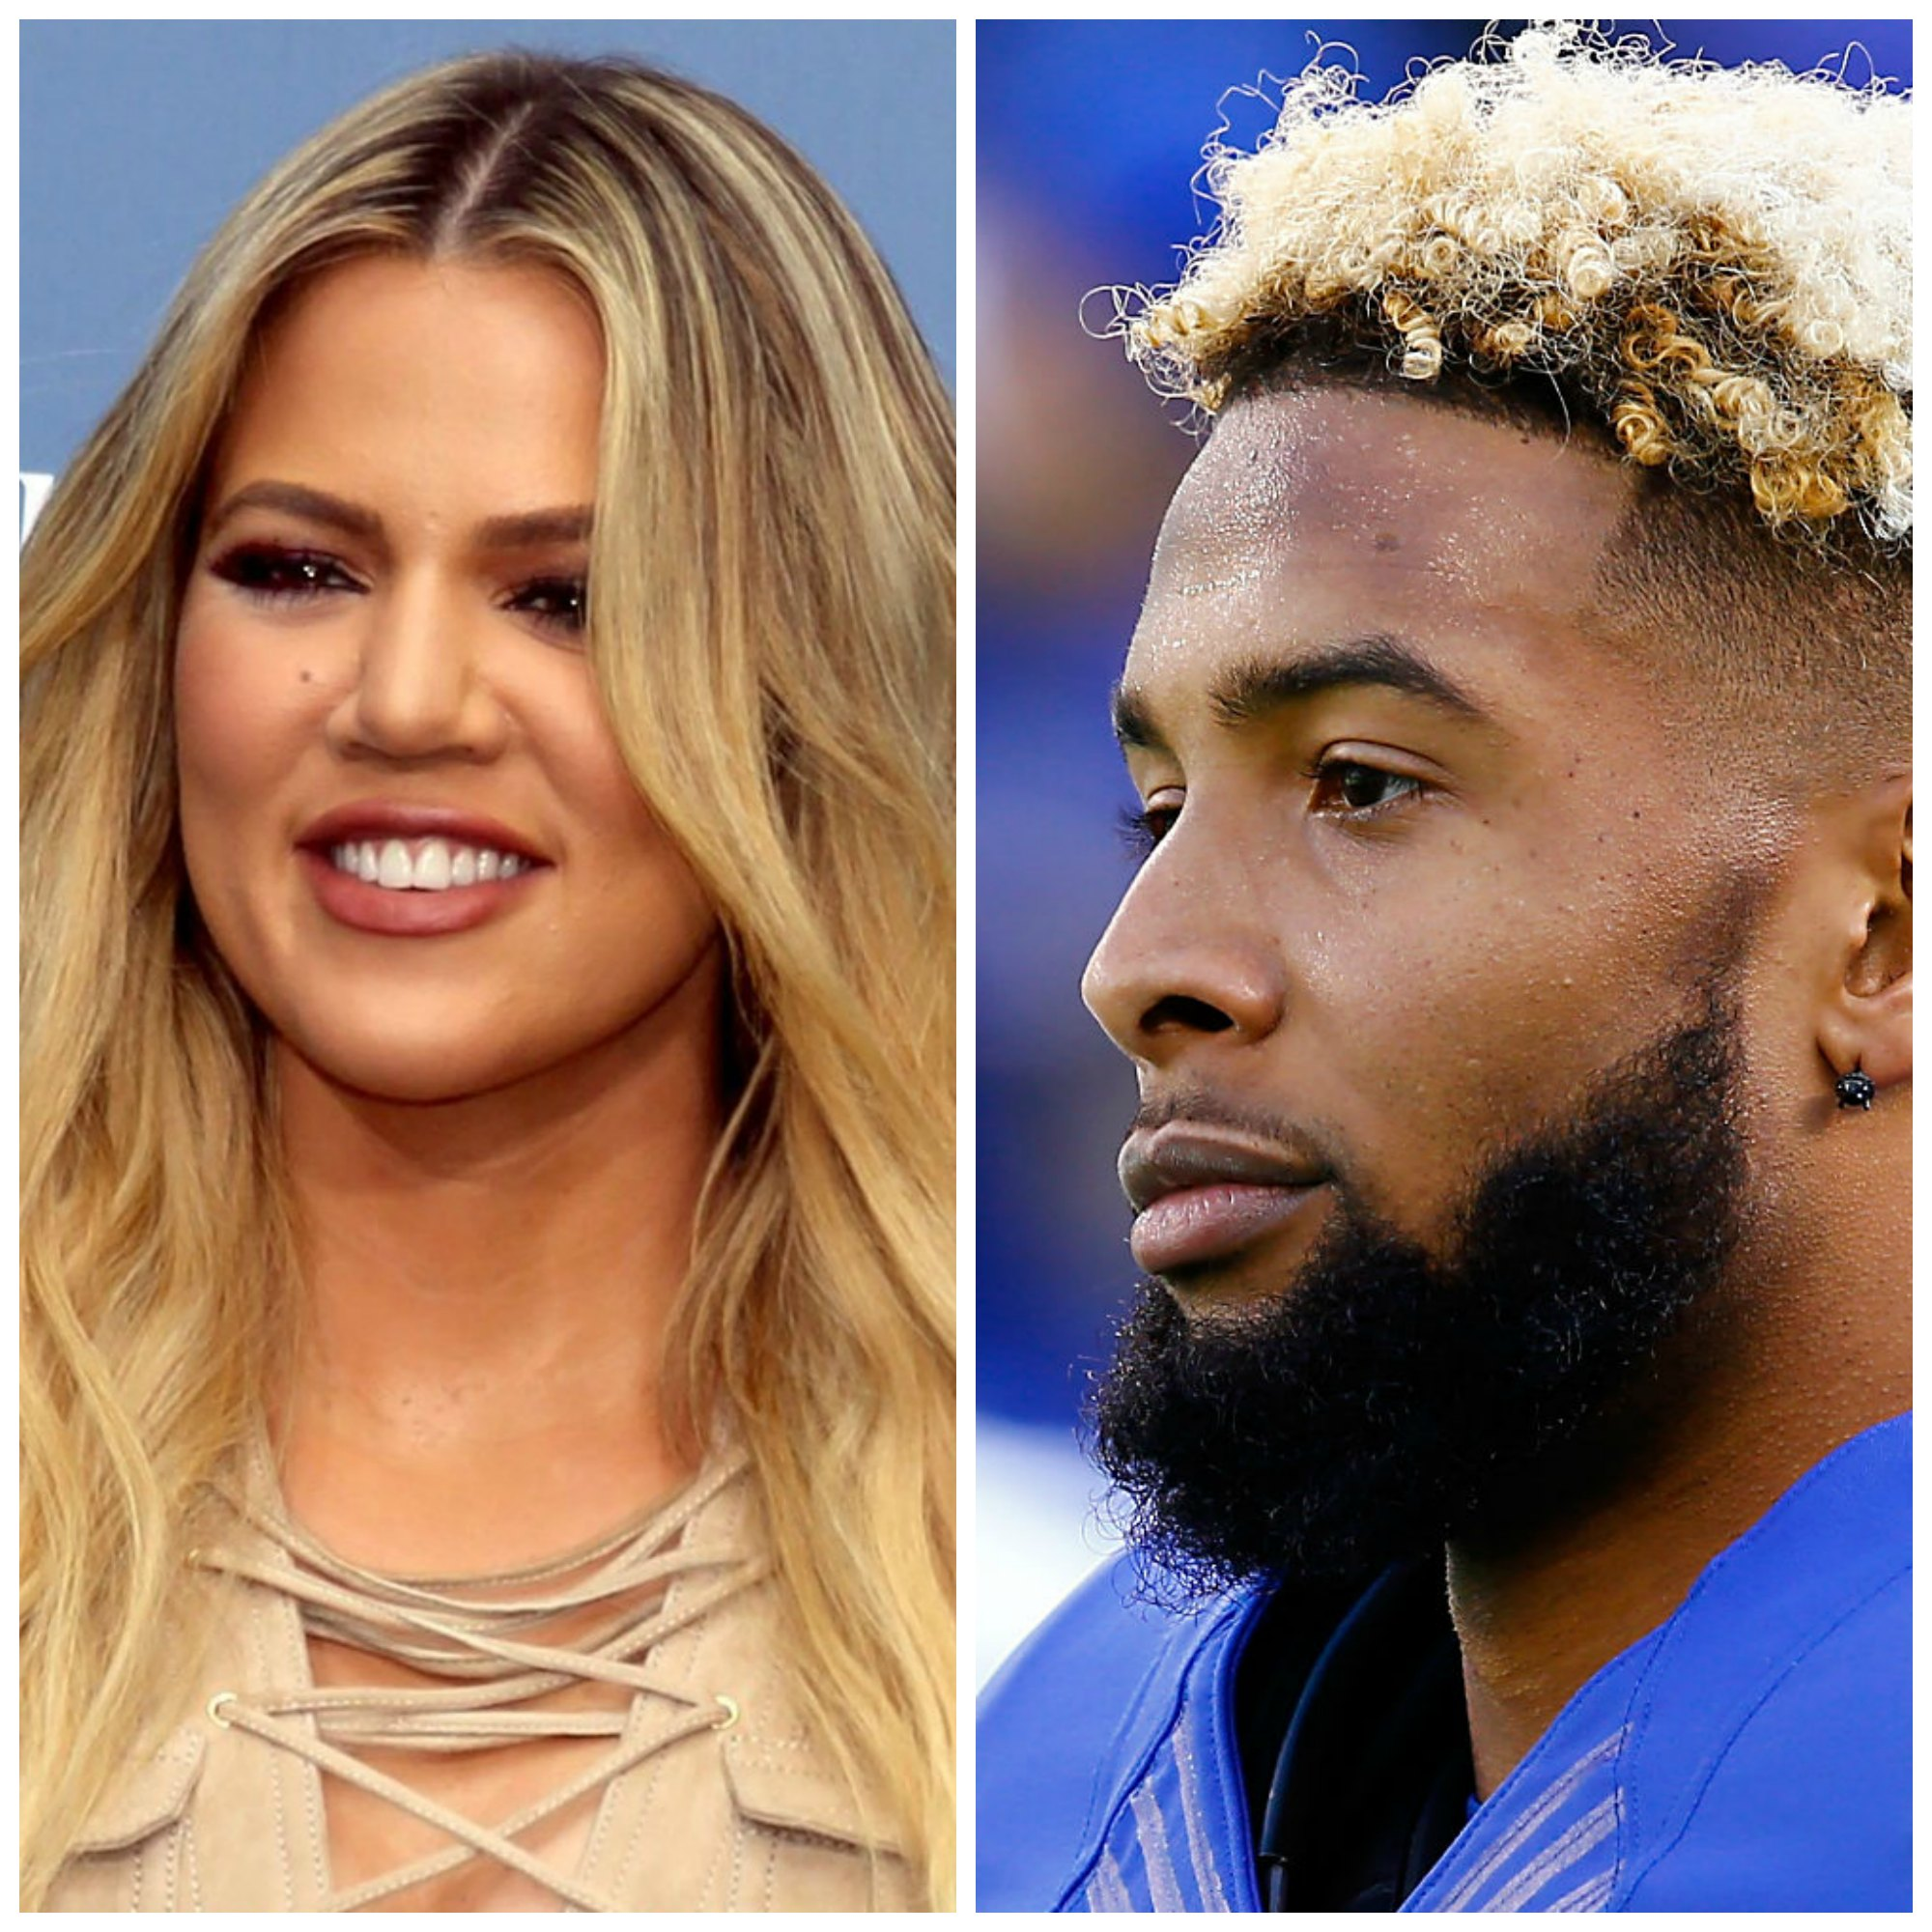 Khloe Kardashian Might Be Dating Giants' Odell Beckham, Jr!